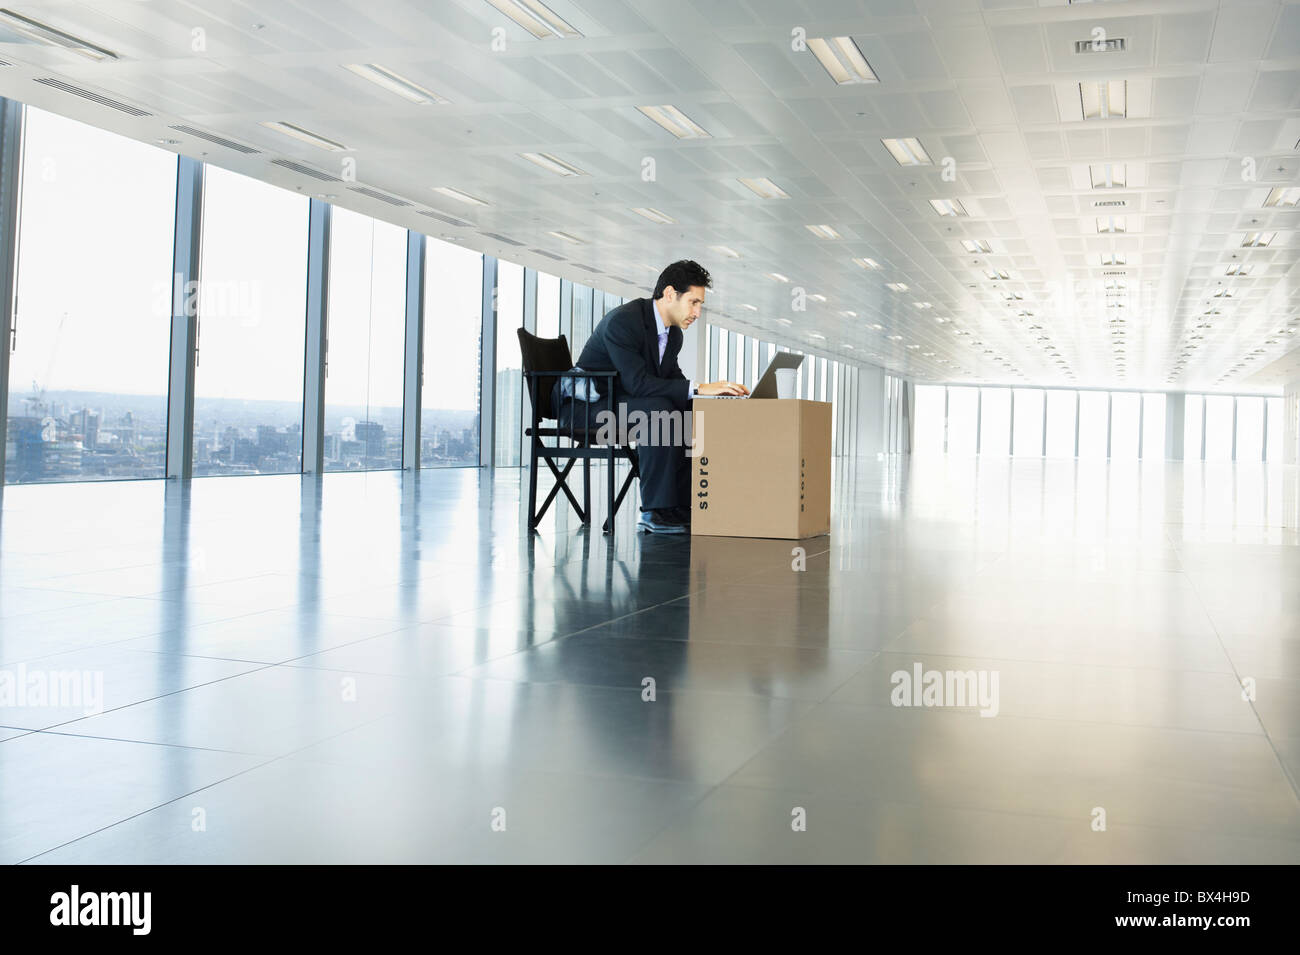 Businessman working on laptop in empty office space using cardboard box as desk - Stock Image